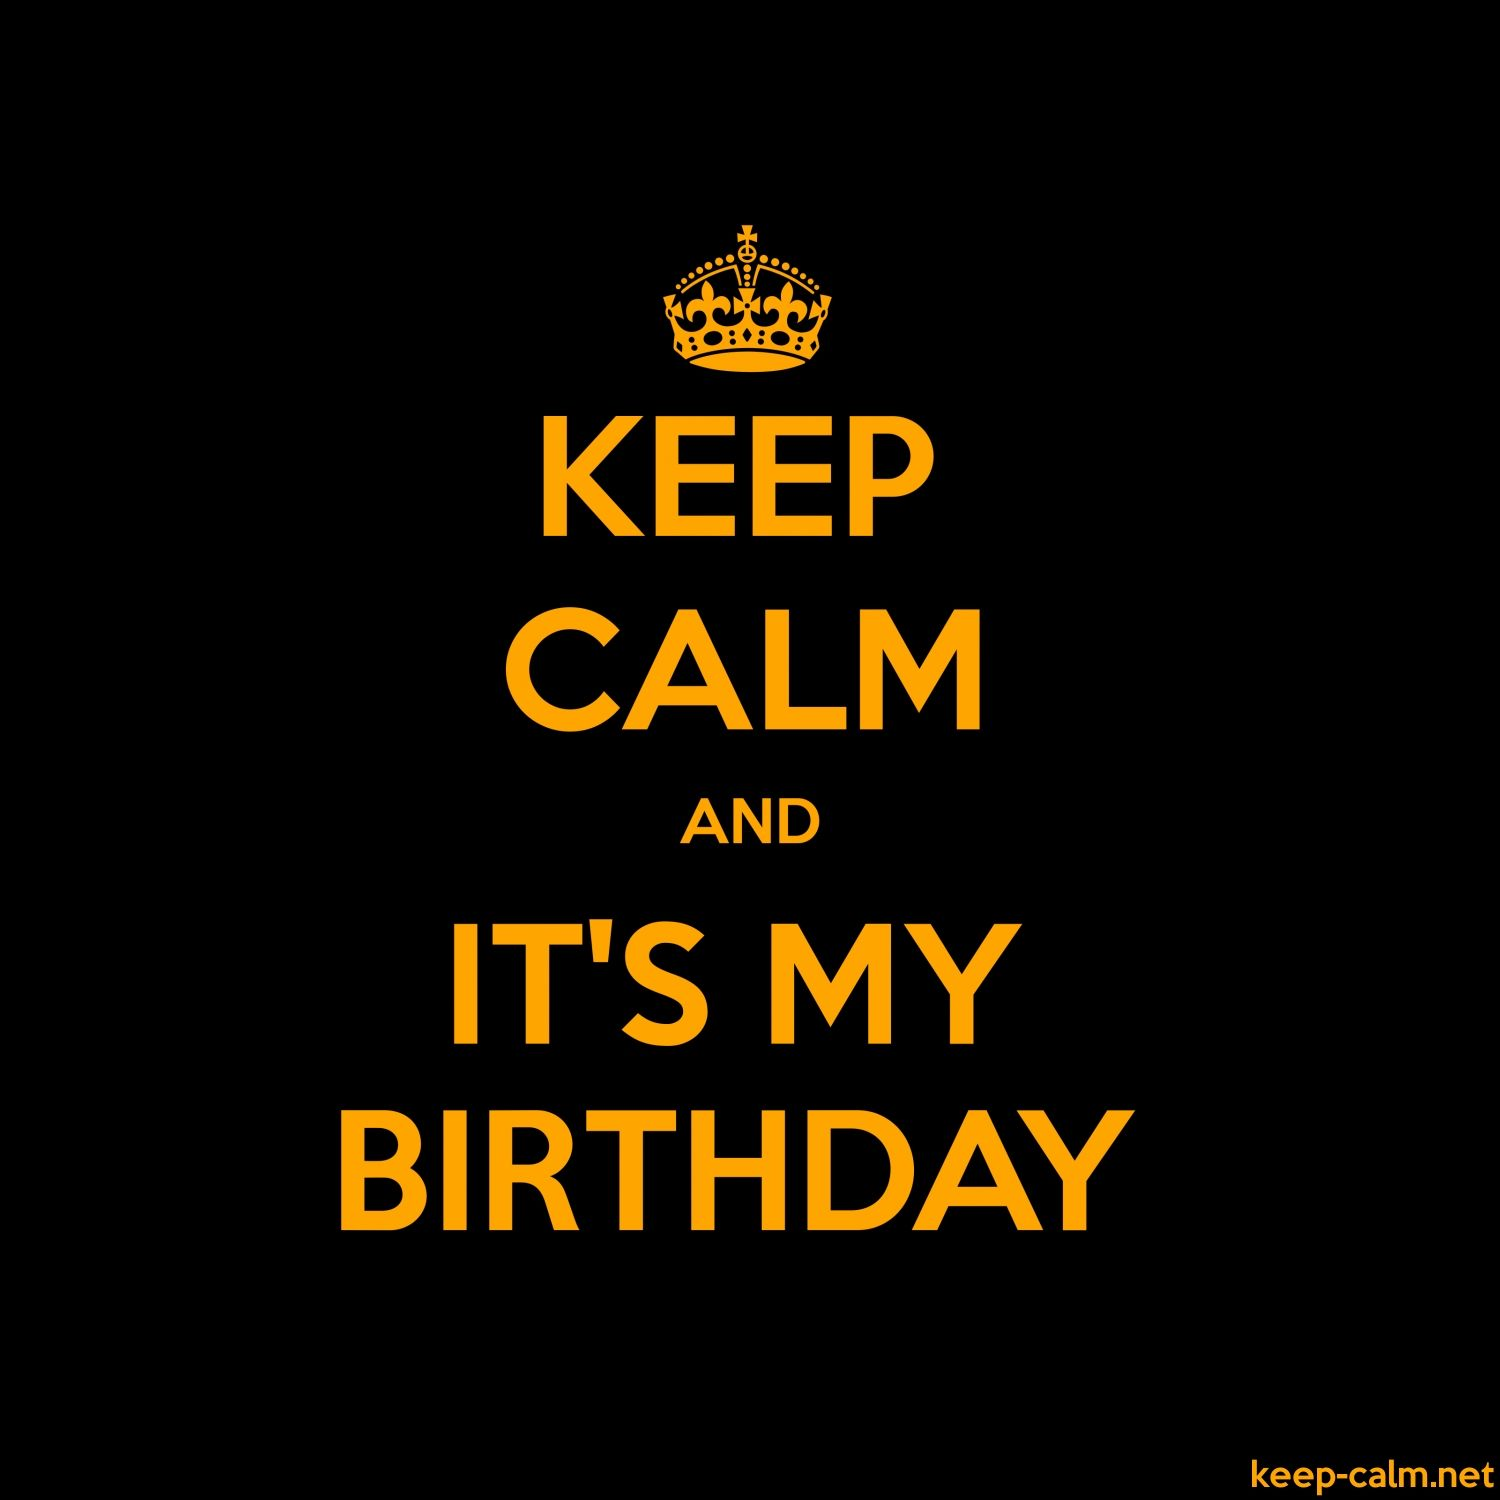 Pin on Keep calm my birthday